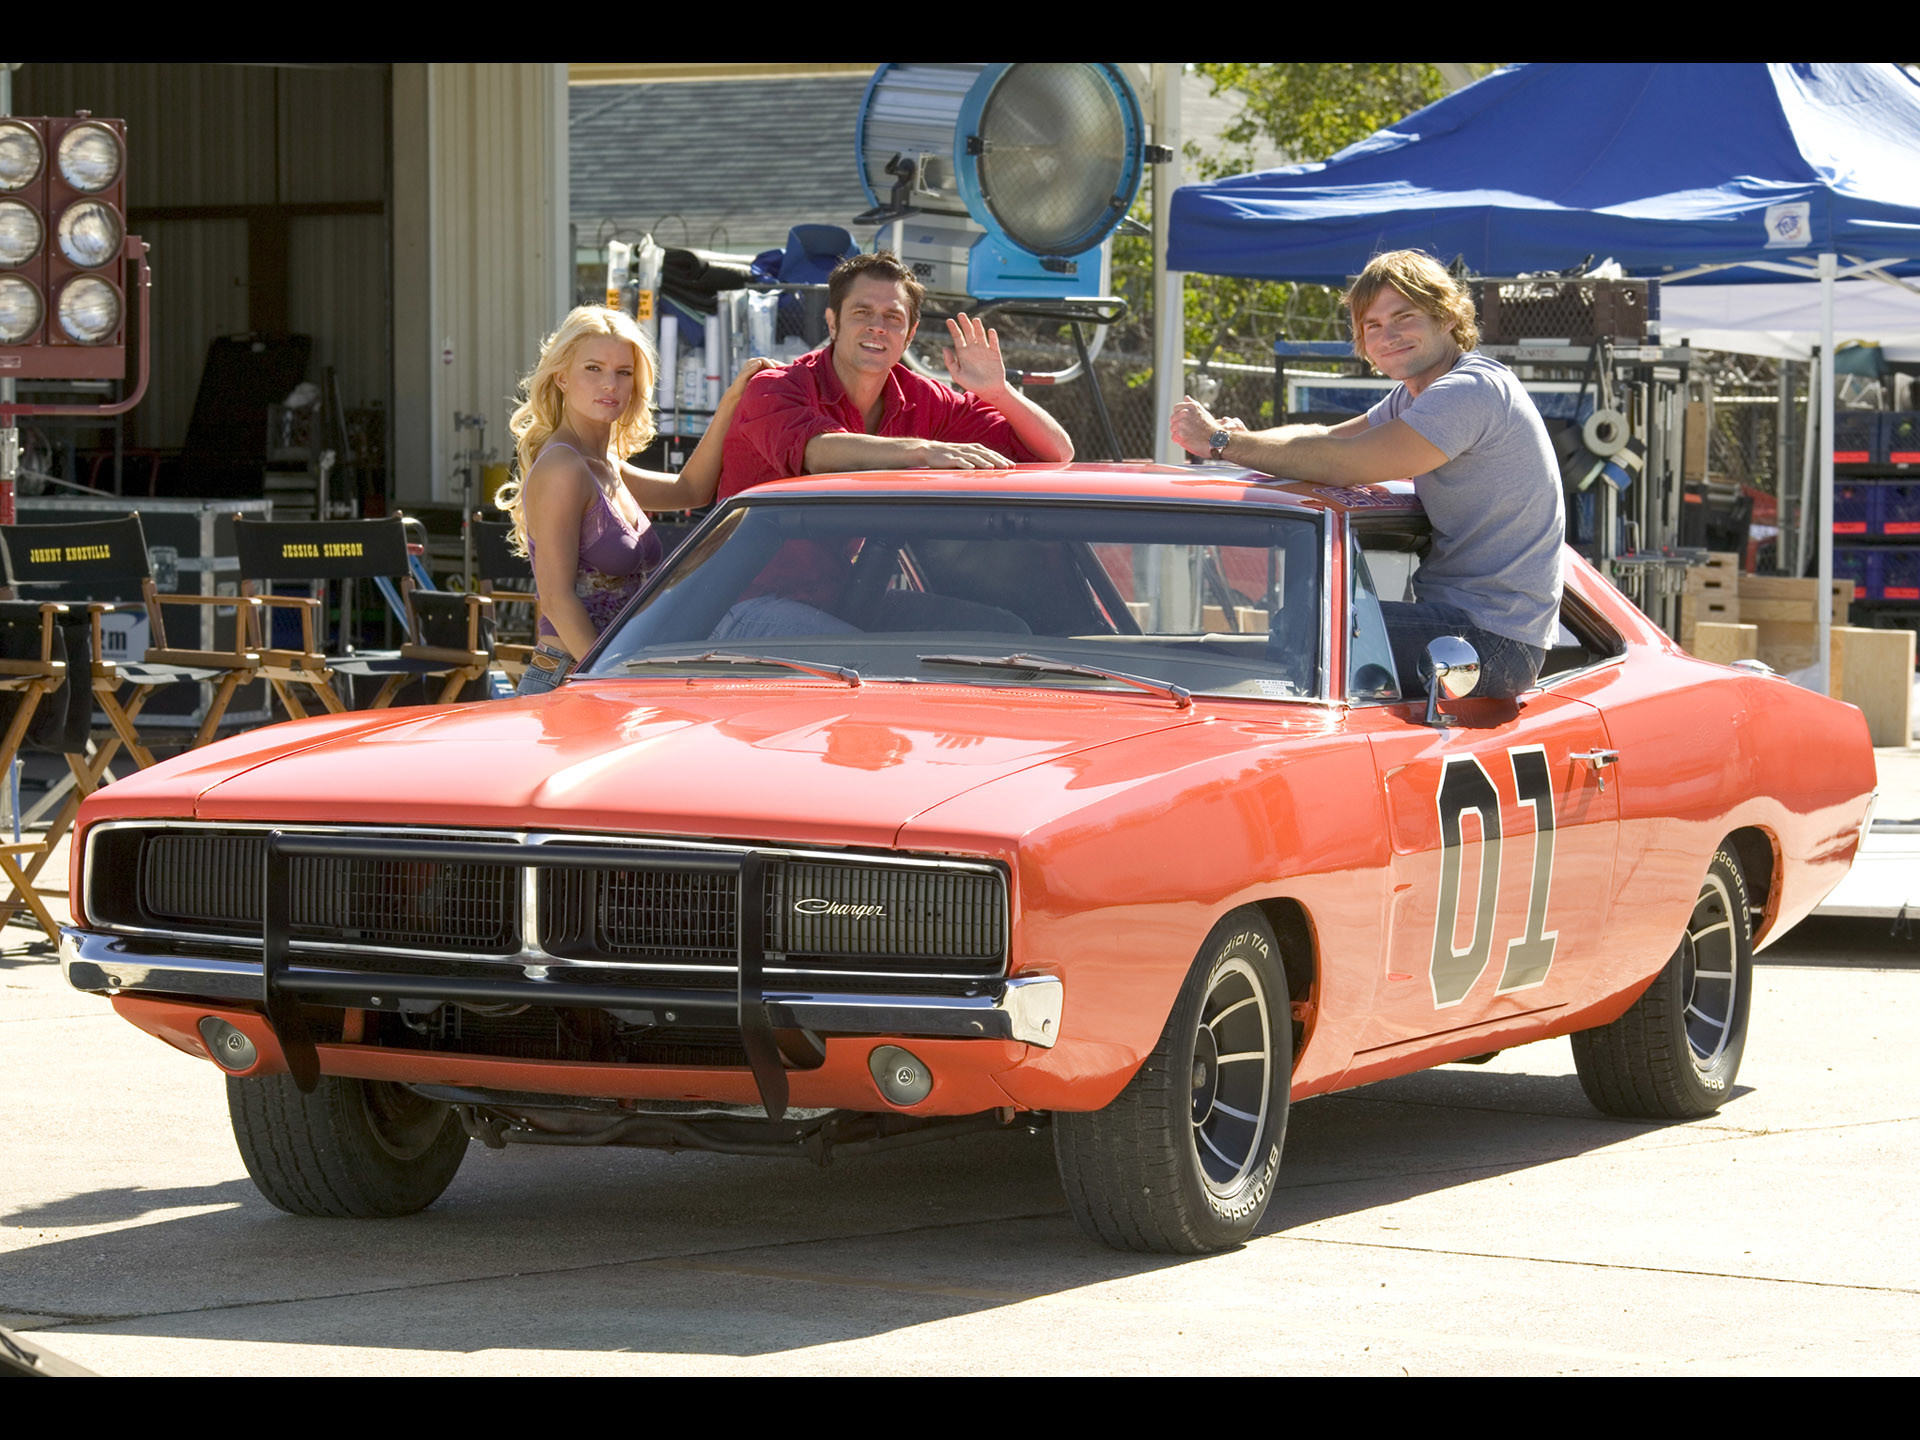 "1920x1440 1969 Dodge Charger - General Lee from "" The Dukes of Hazzard"" Movie -  Jessica Simpson, Johnny Knoxville & Seann William Scott -   Wallpaper"